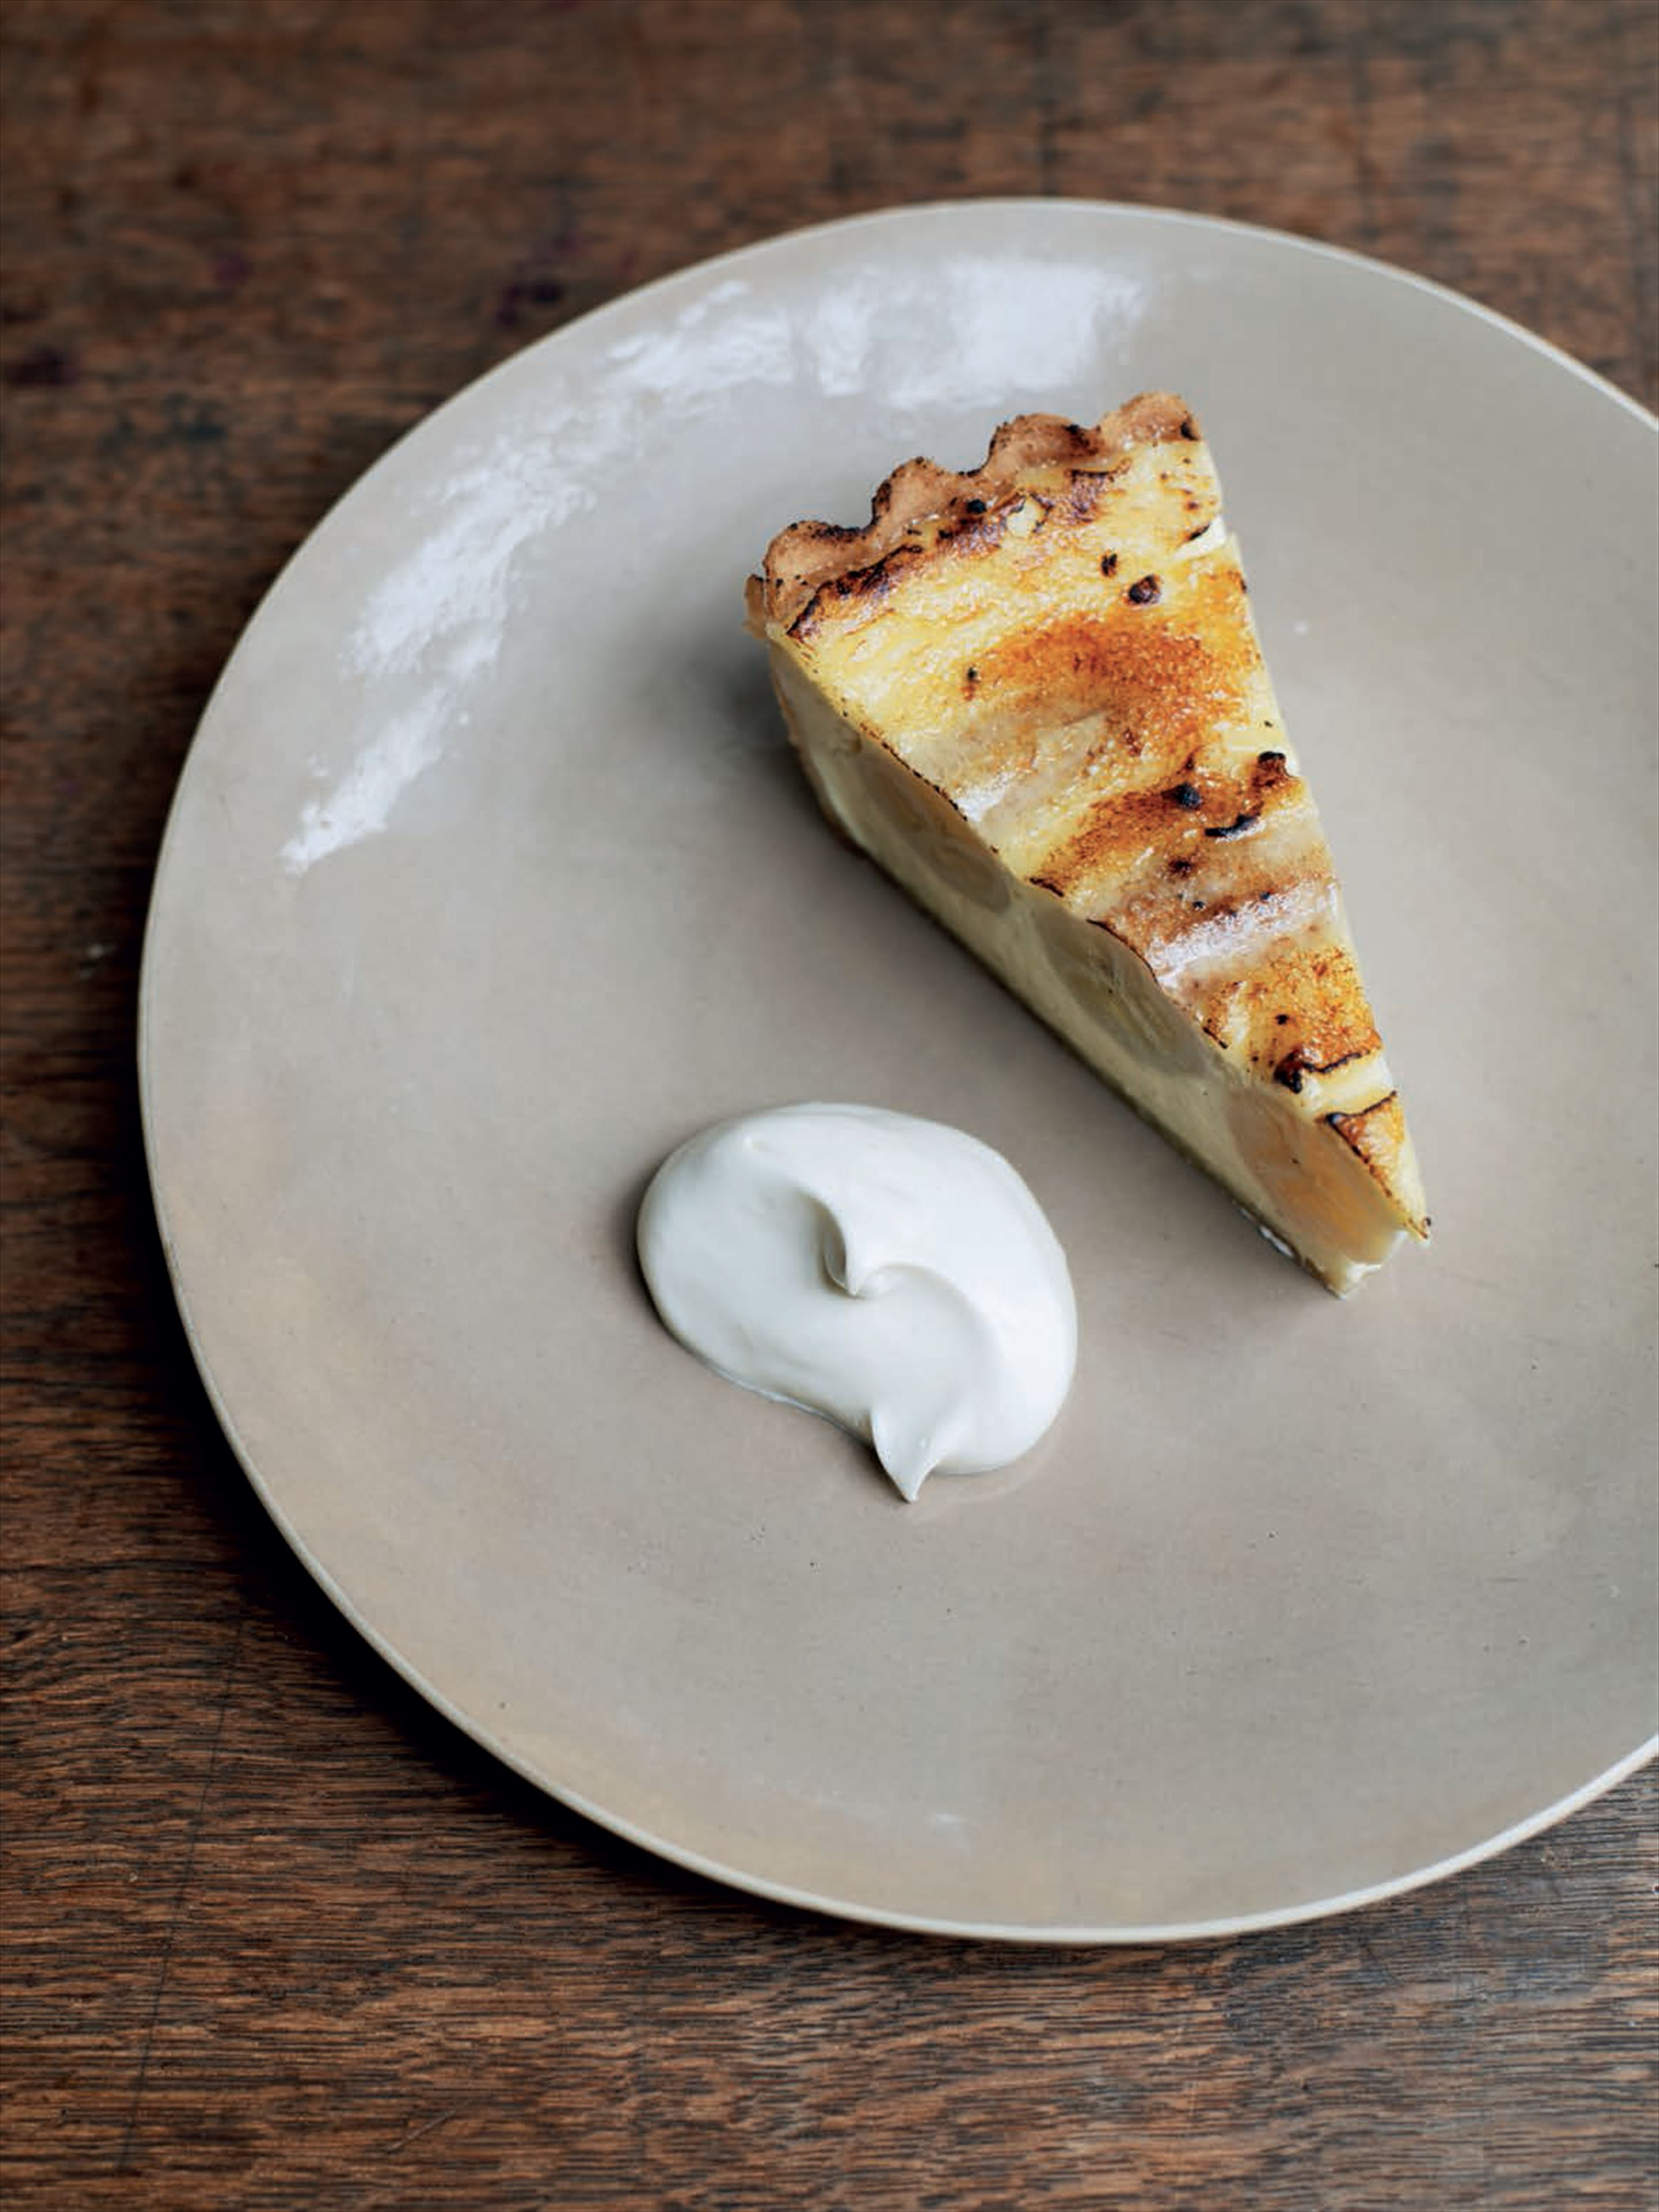 Banana and custard tart